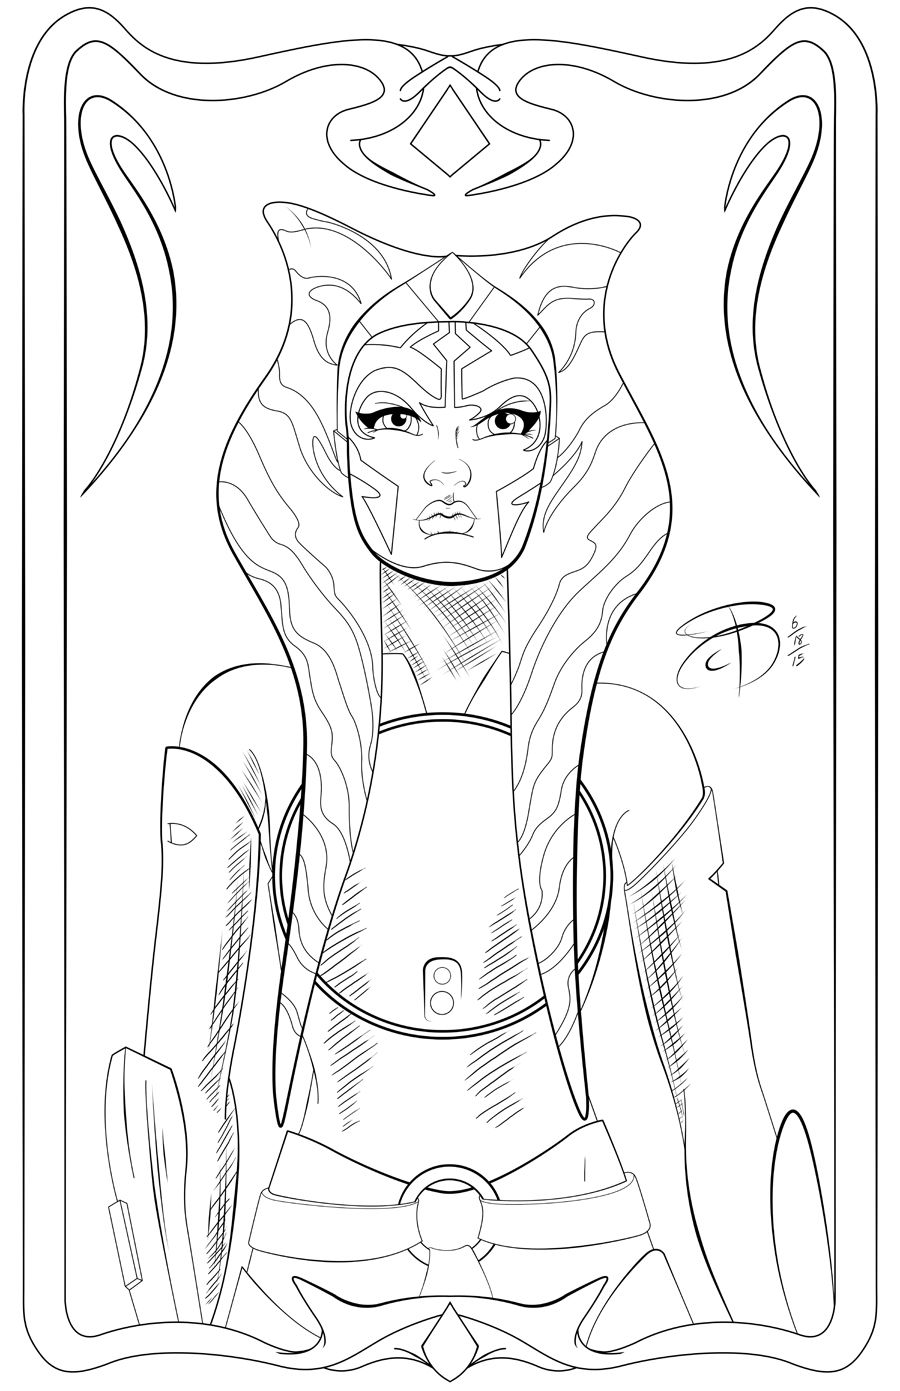 PinUp Ahsoka Tano by RCBrock on DeviantArt LineArt Star Wars